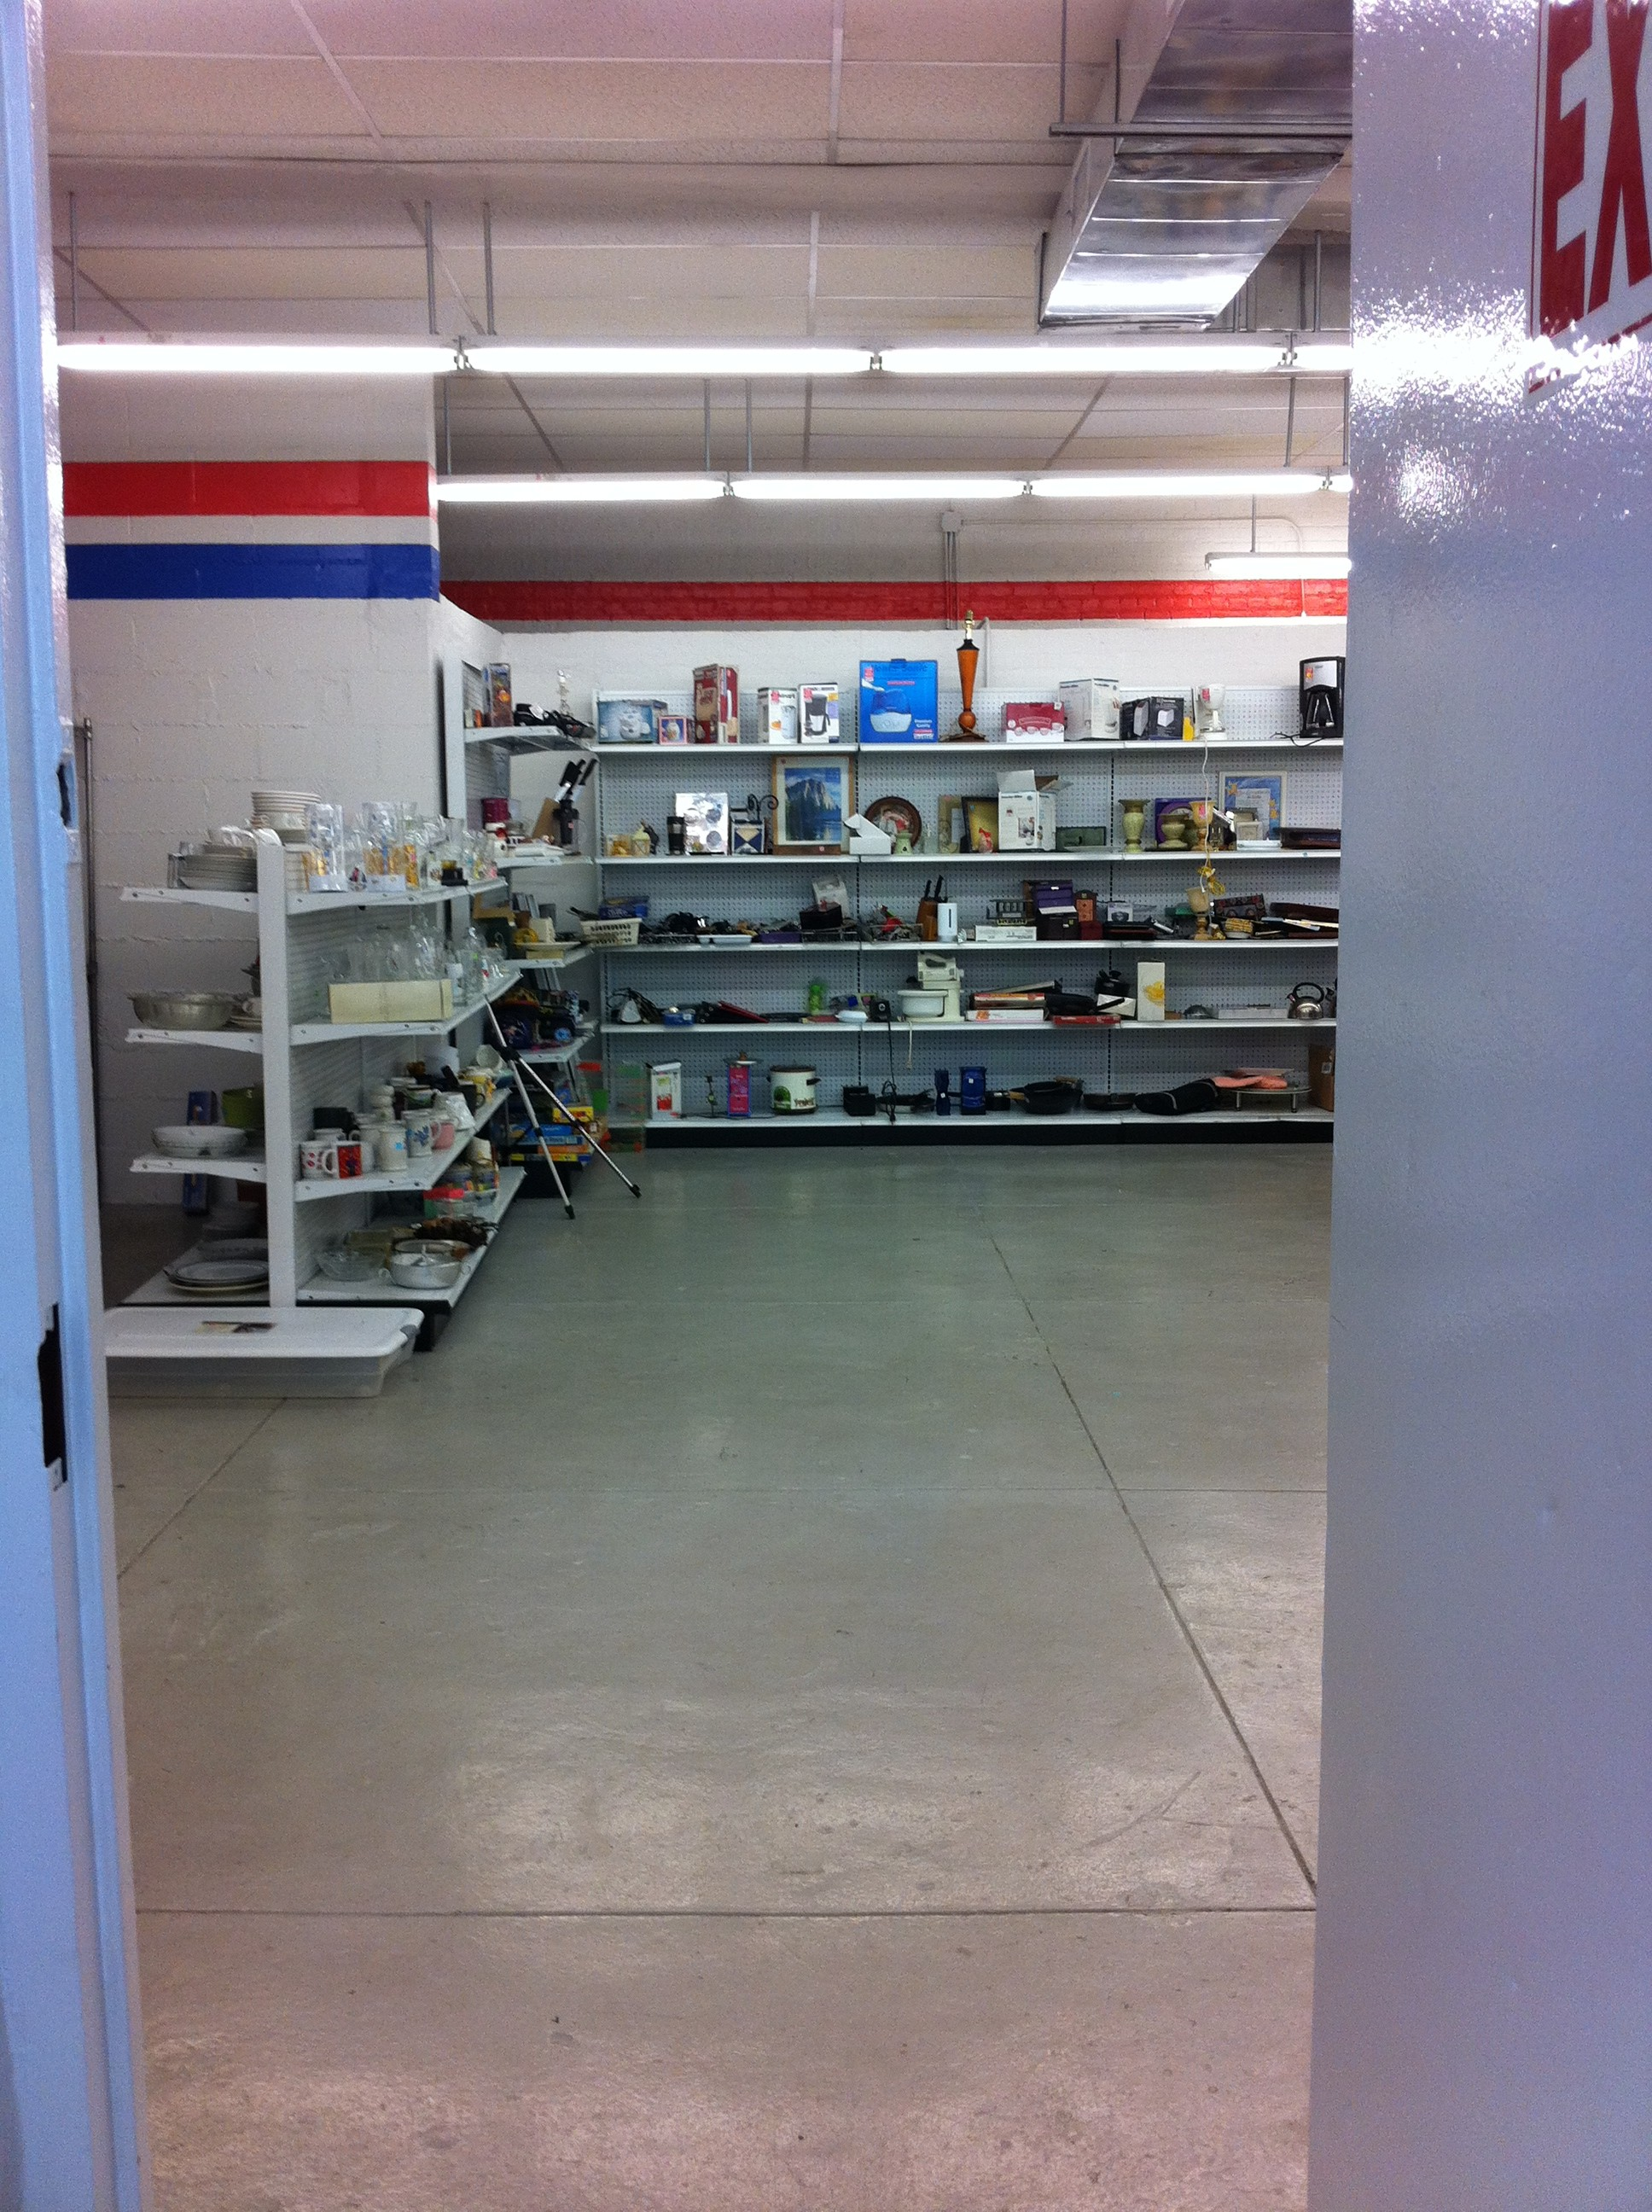 An image of the housewares shelves at the local Salvation Army